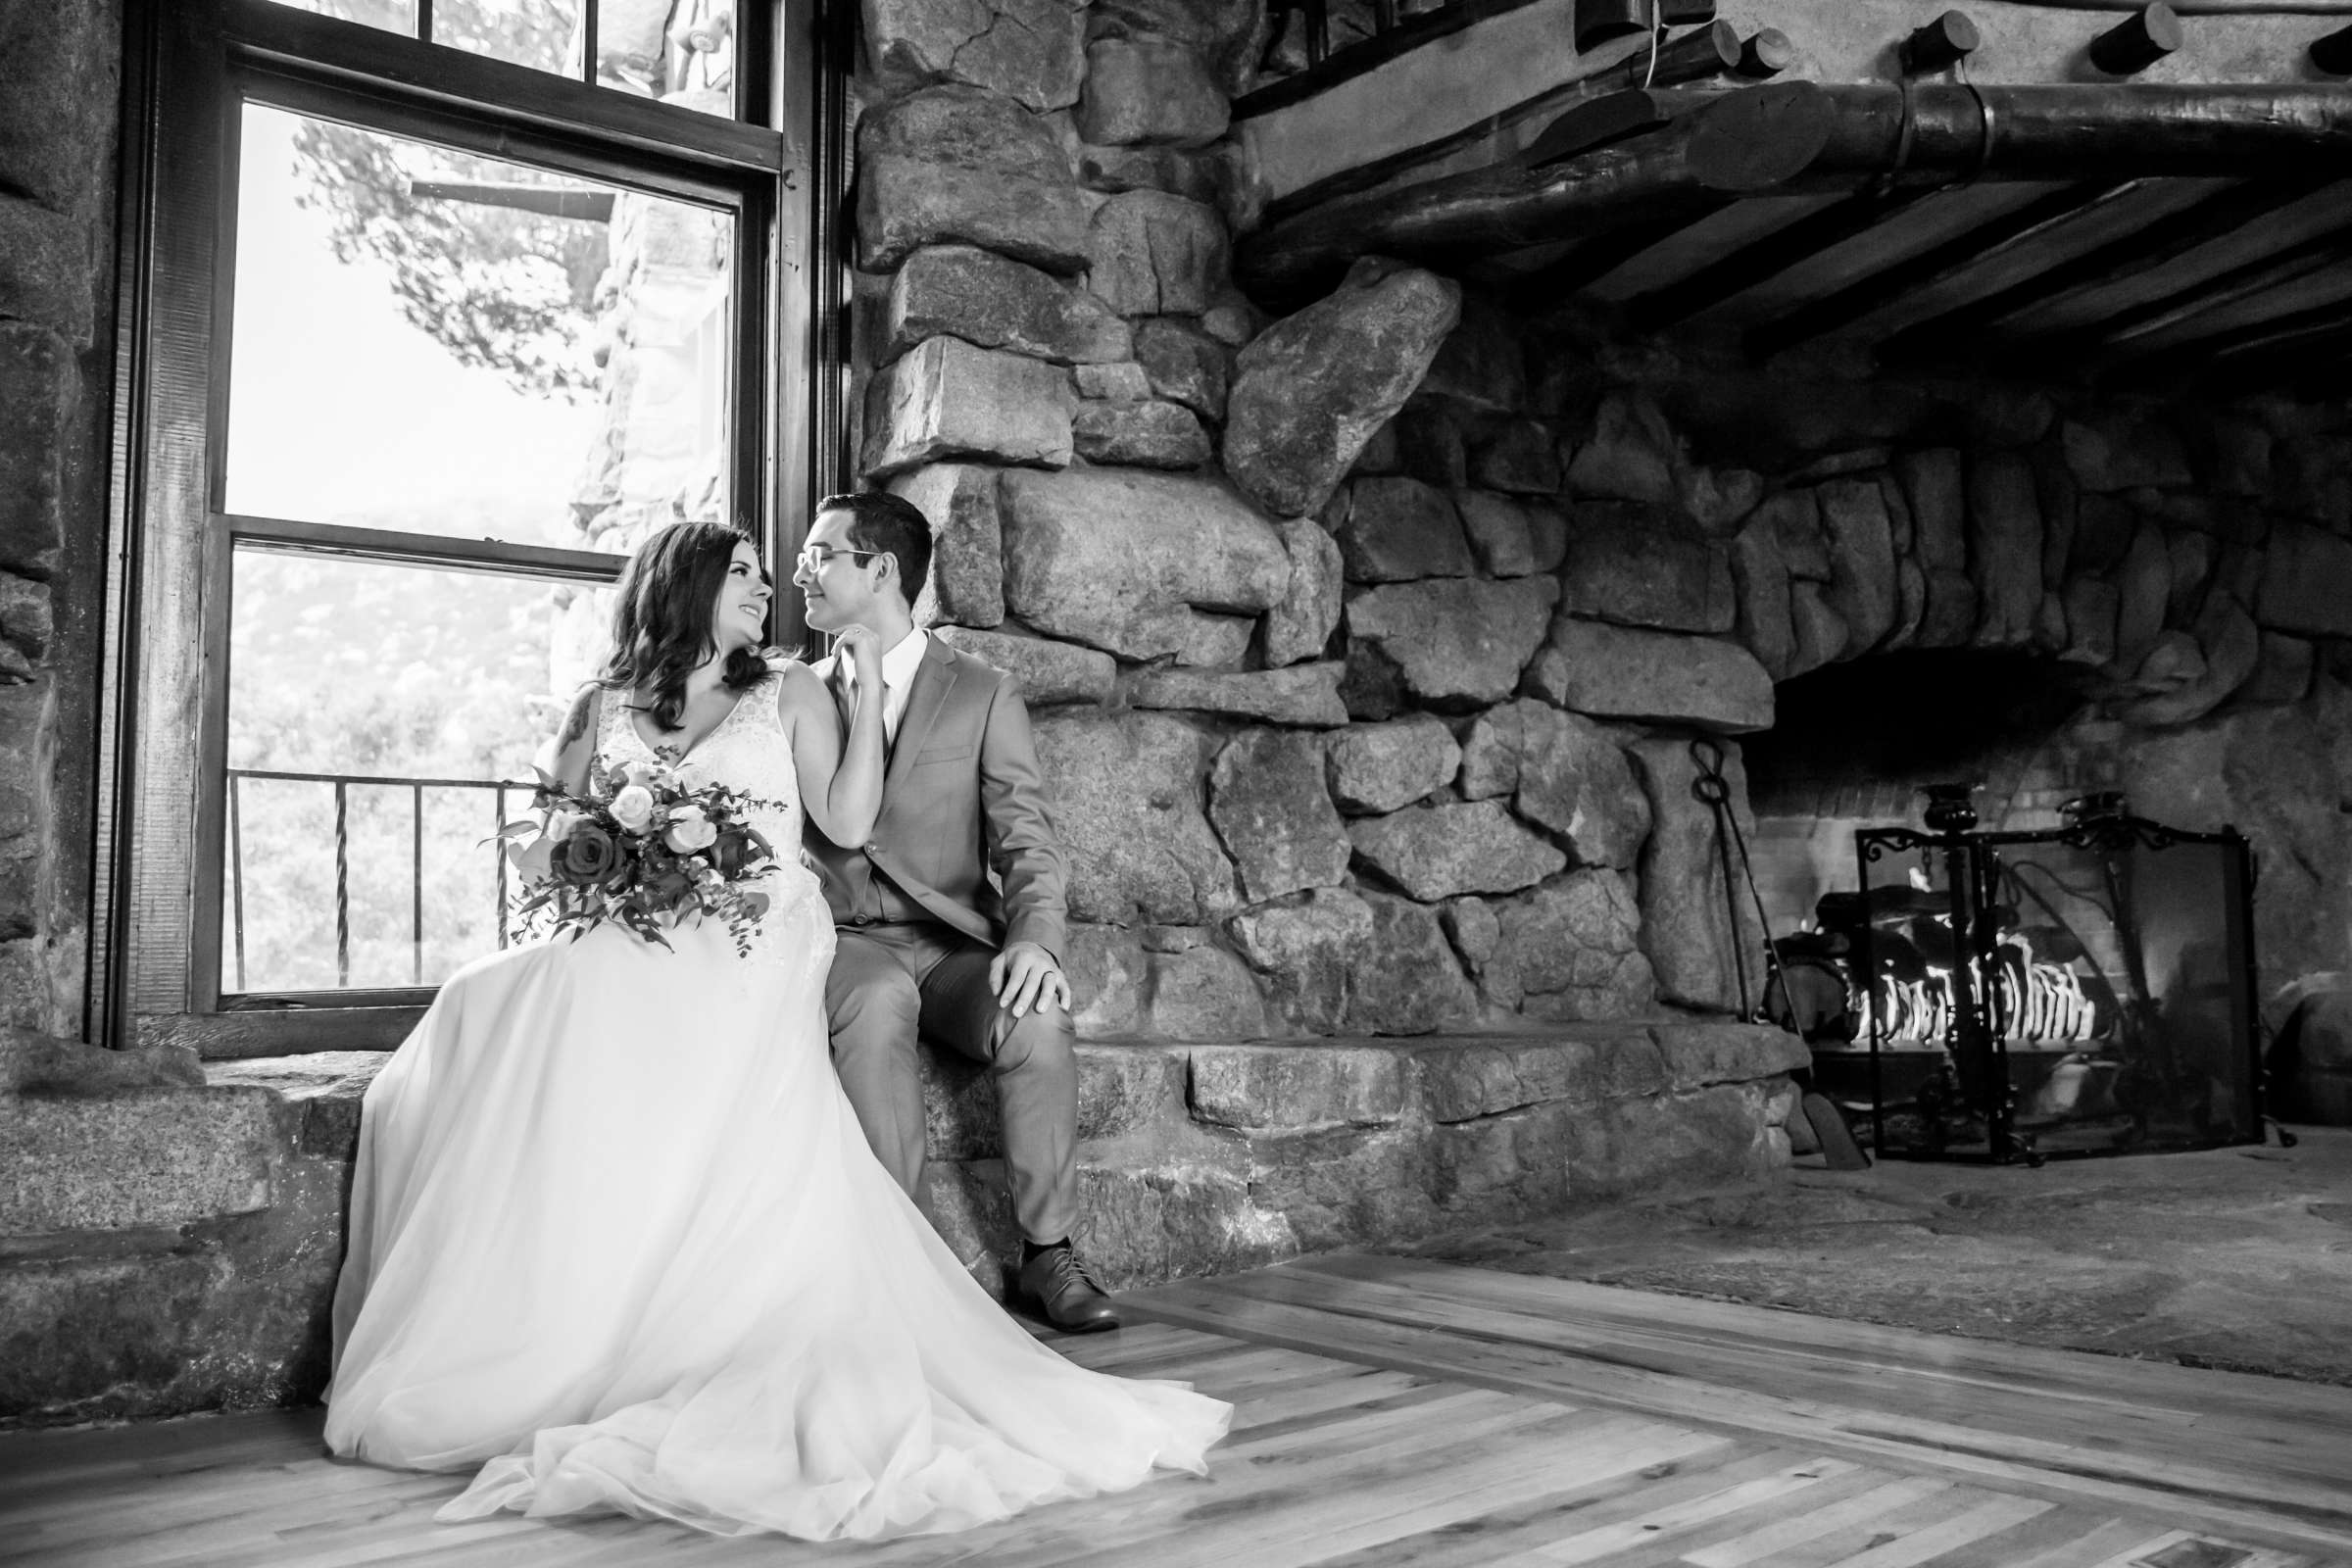 Mt Woodson Castle Wedding, Valerie and Ian Wedding Photo #15 by True Photography